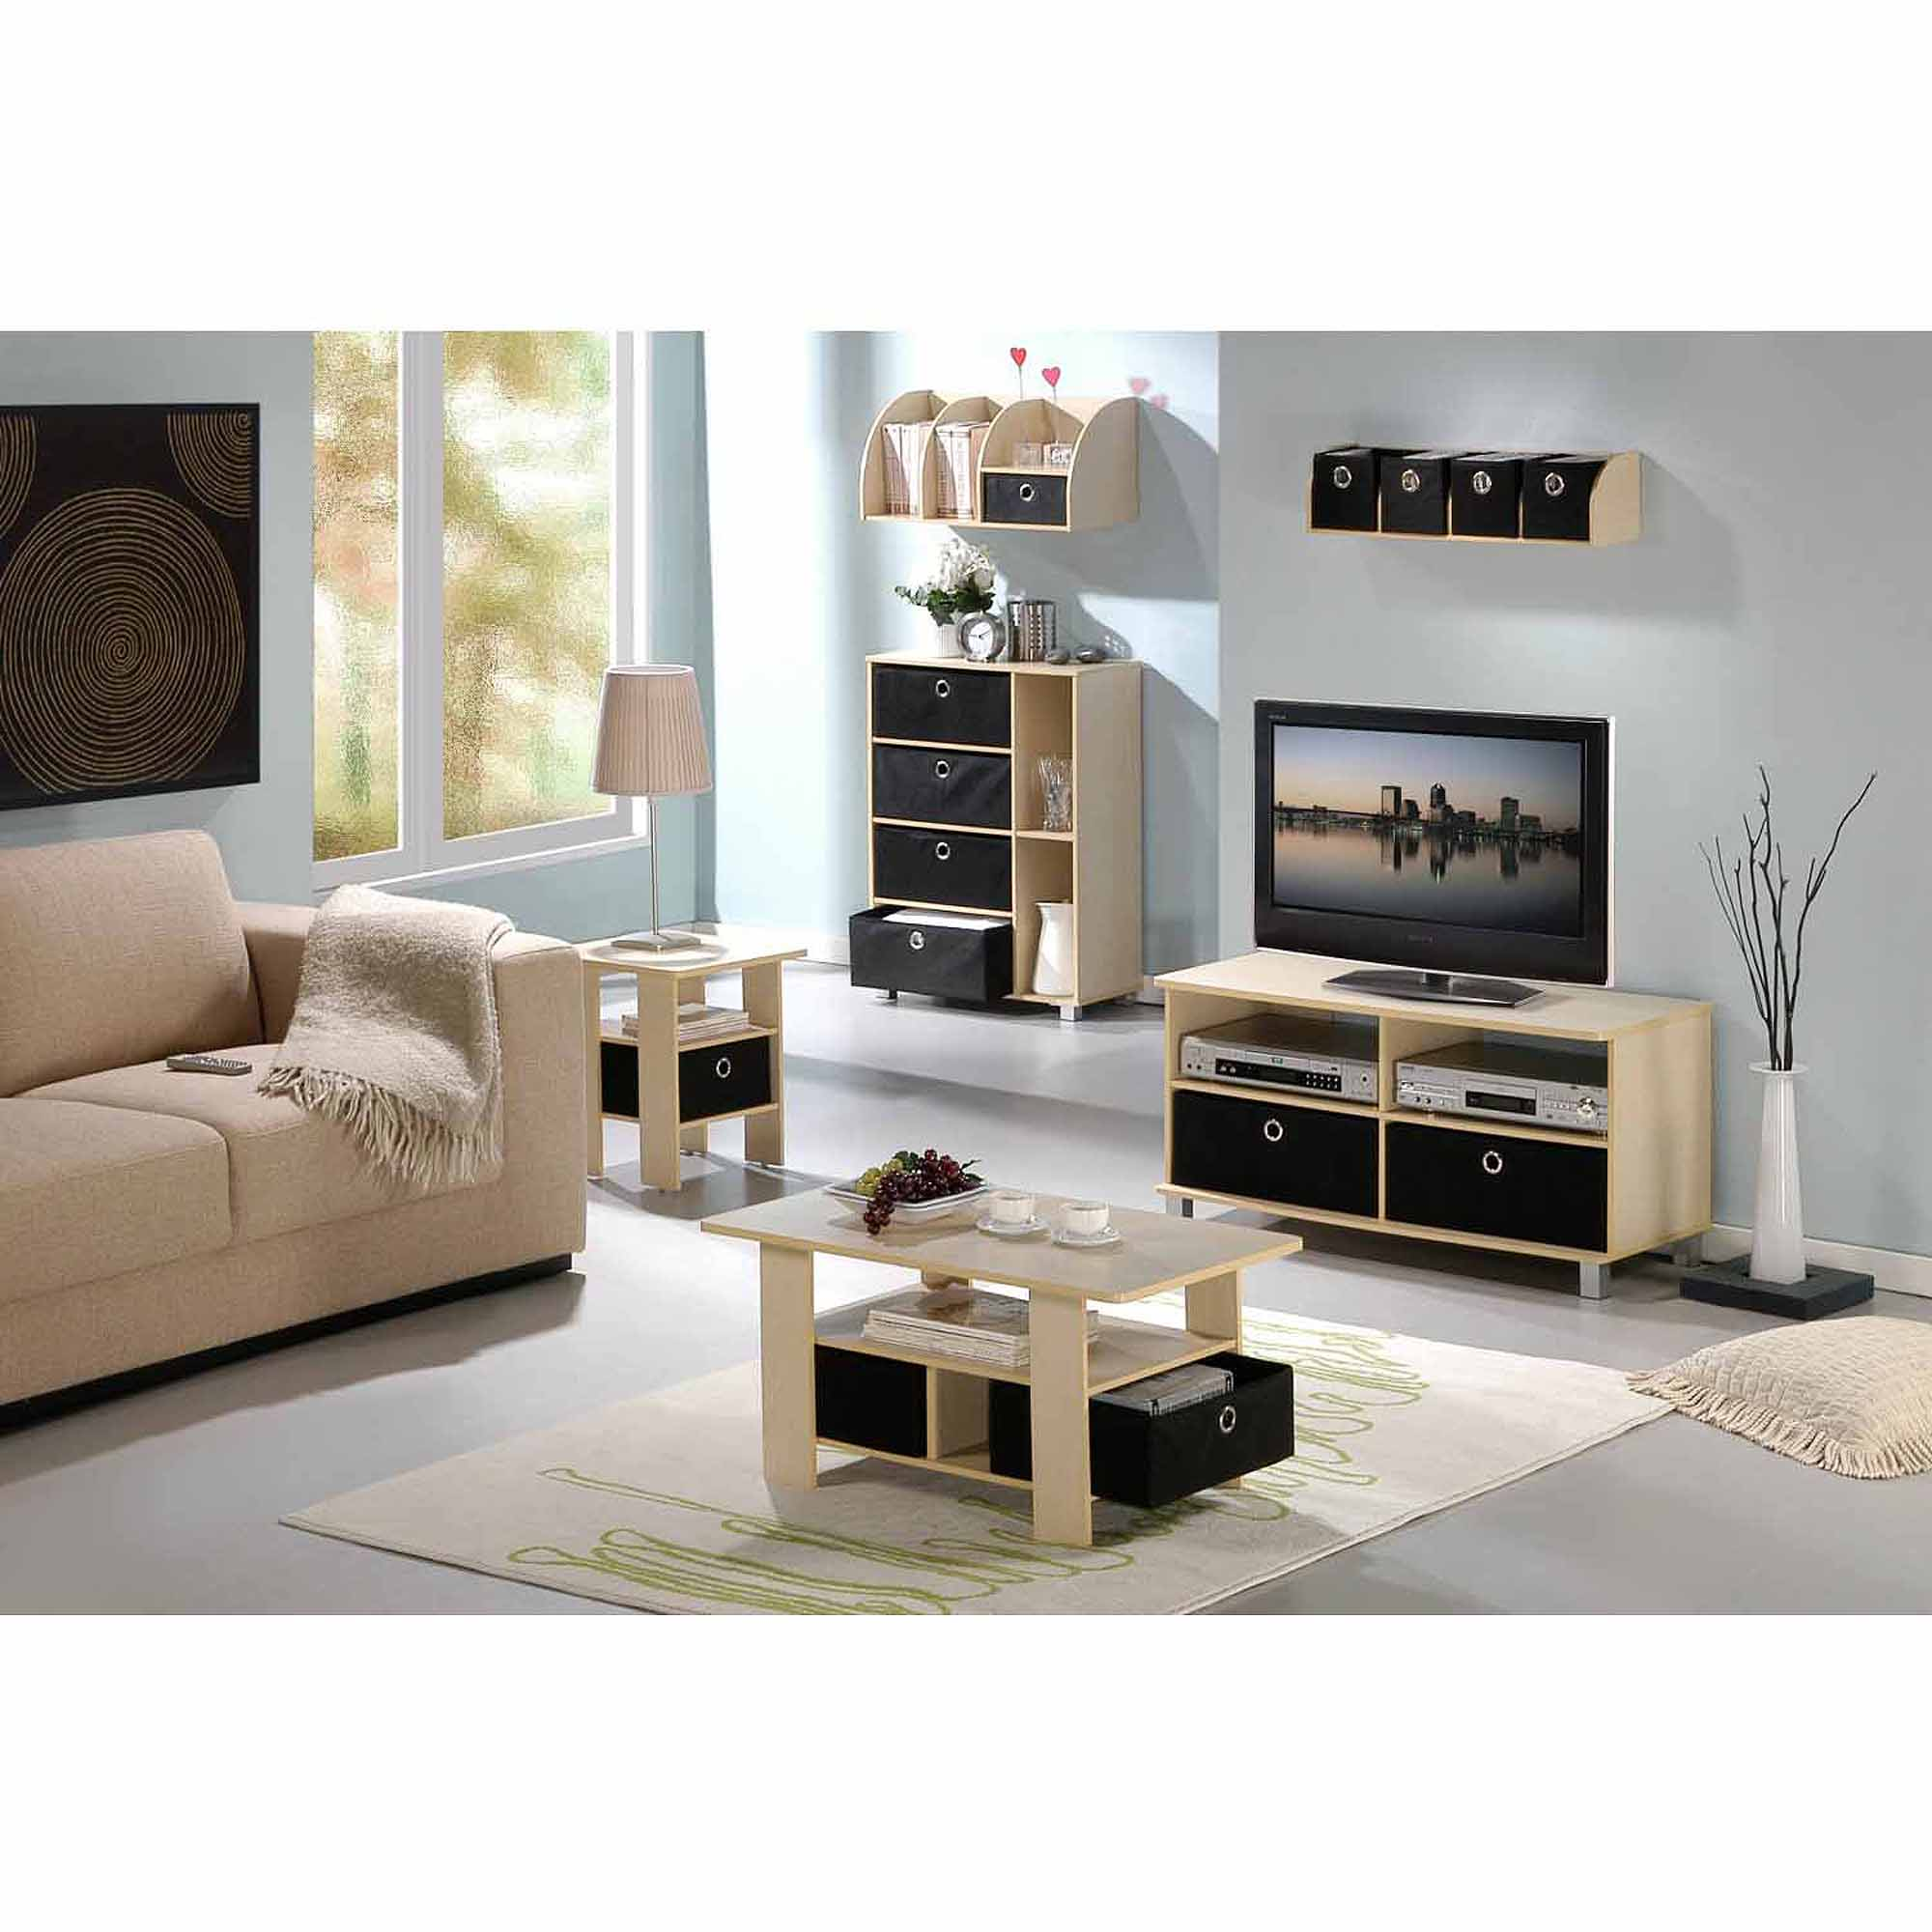 Tall Side Table, Espresso - Walmart.com